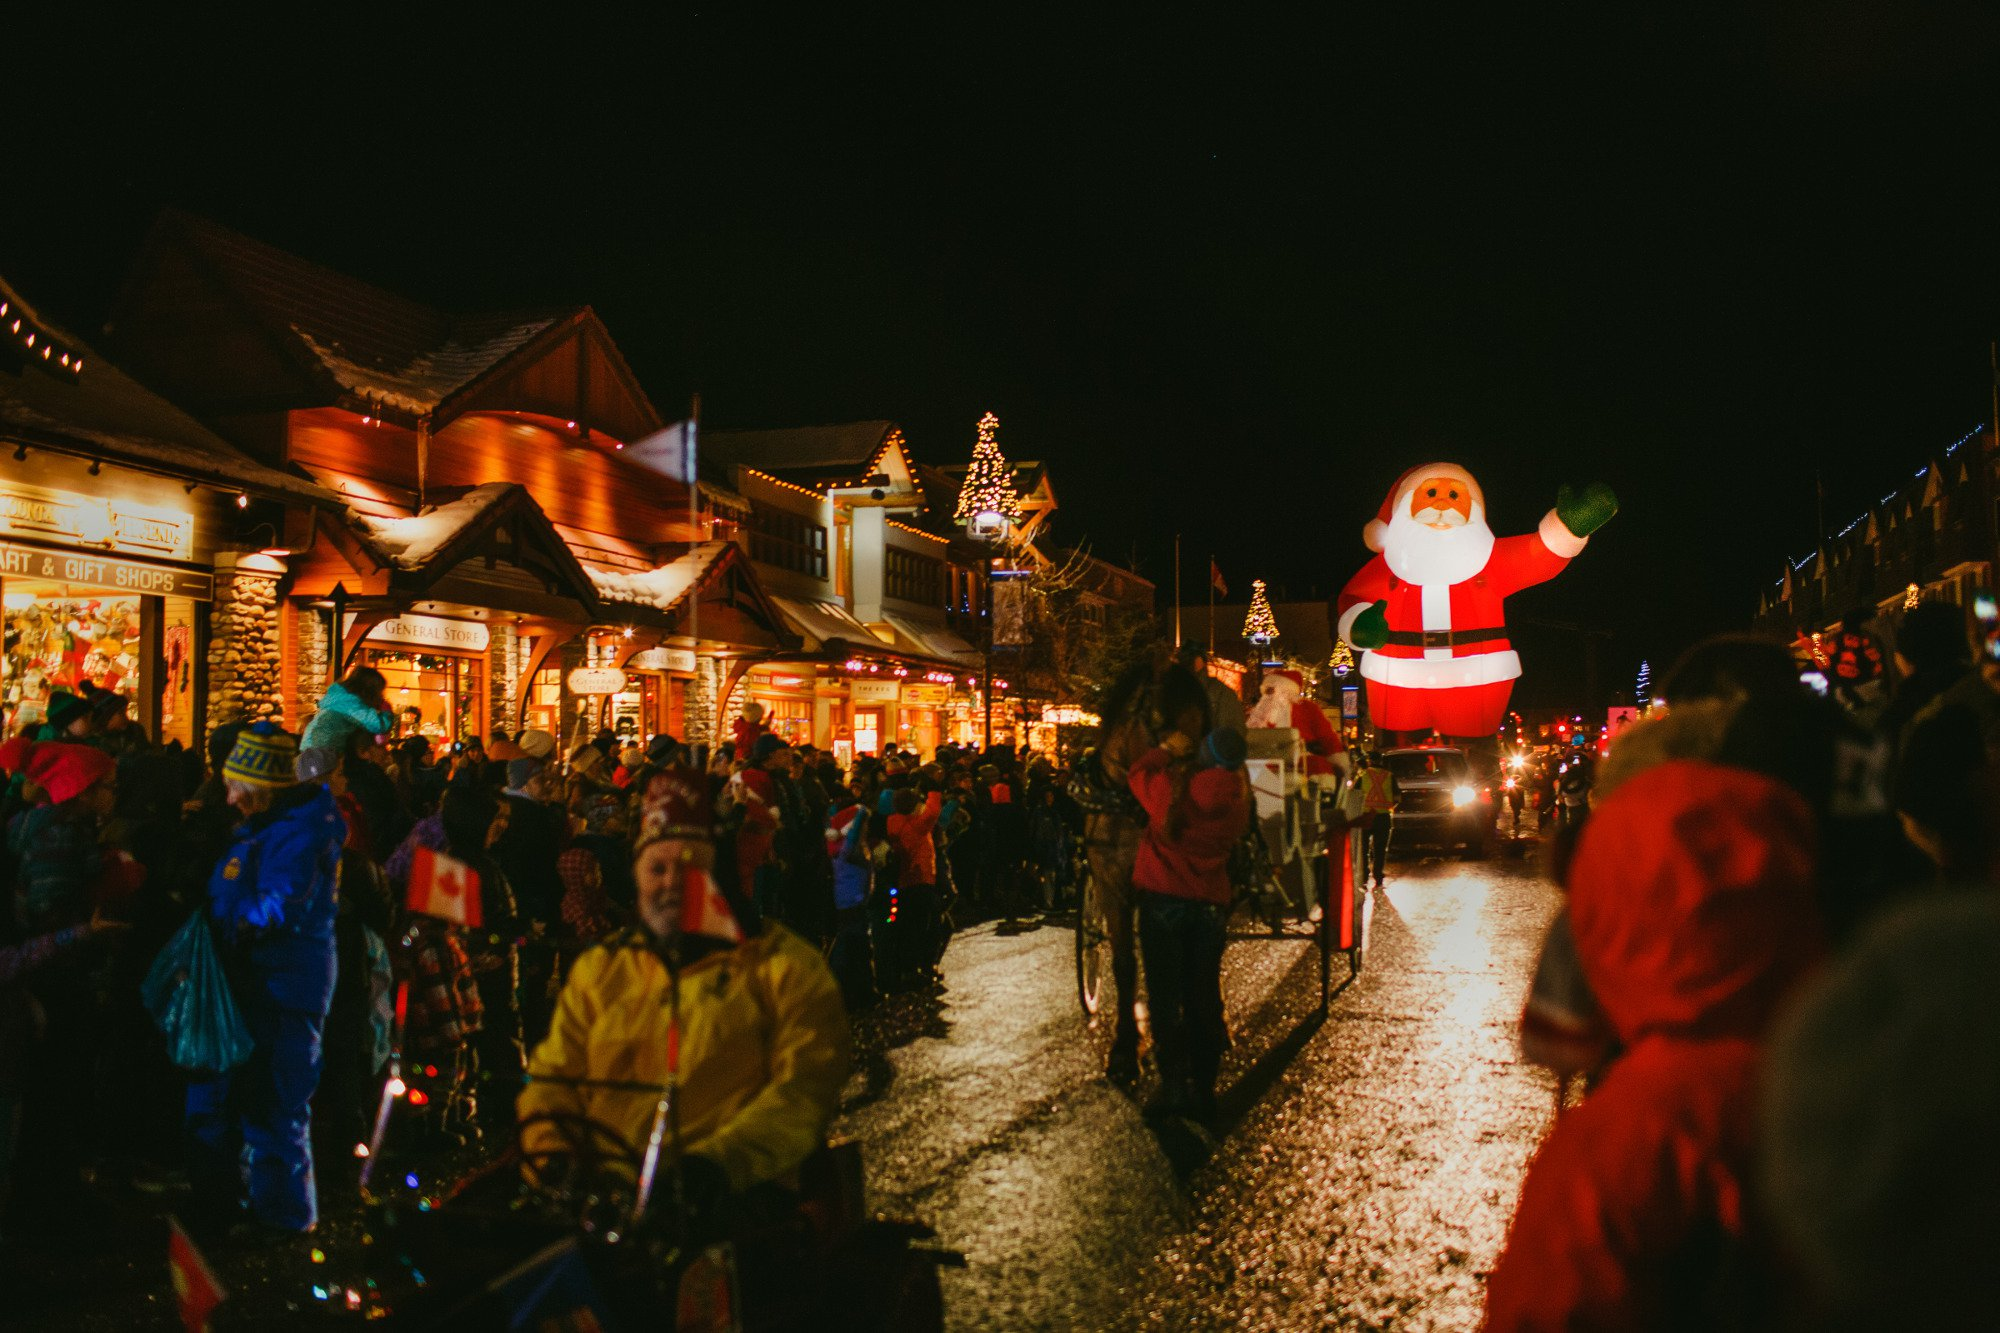 Calgary doesn't have a Santa Claus parade, so here's the nearby towns that do!